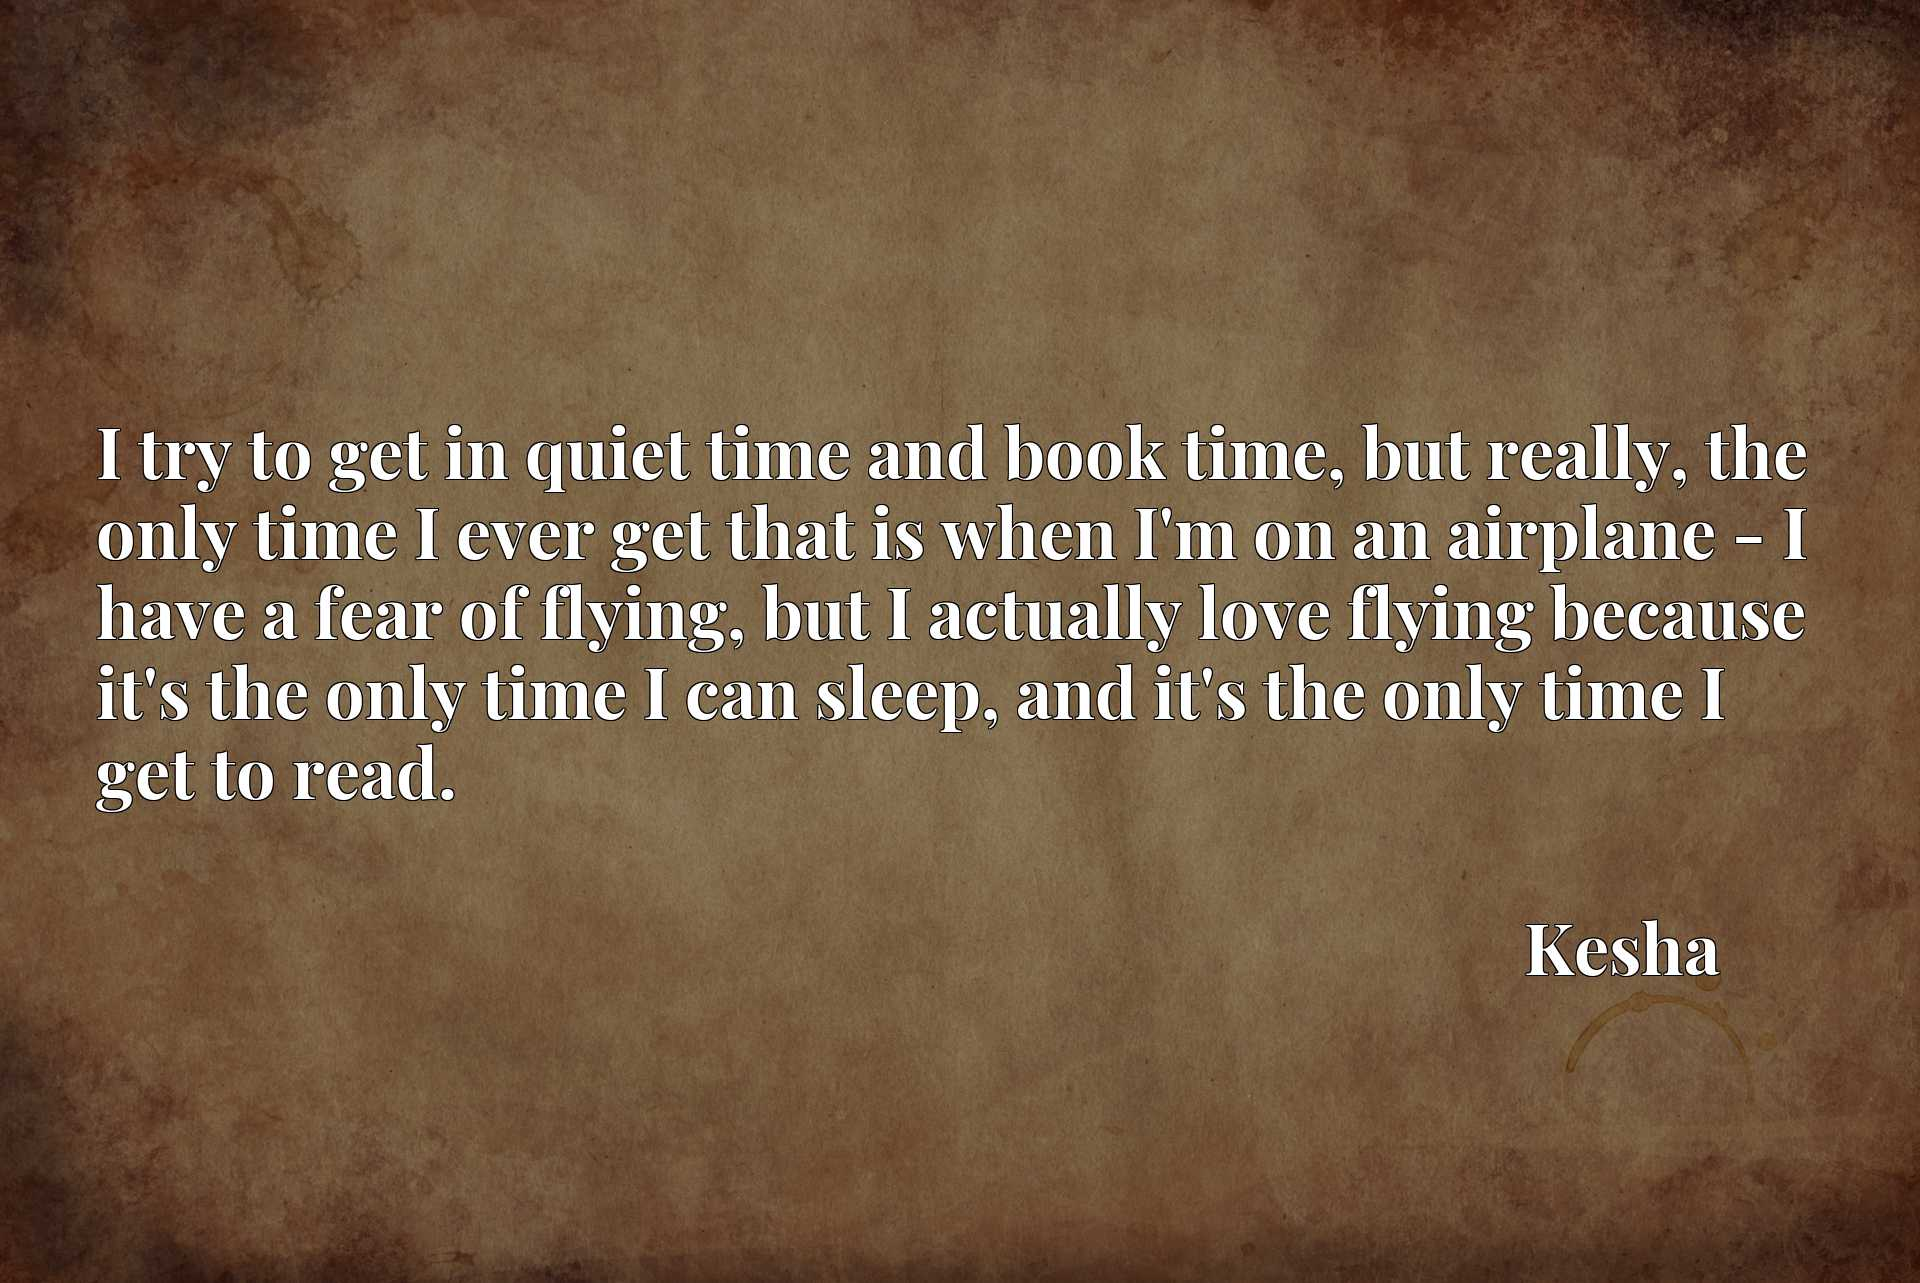 I try to get in quiet time and book time, but really, the only time I ever get that is when I'm on an airplane - I have a fear of flying, but I actually love flying because it's the only time I can sleep, and it's the only time I get to read.